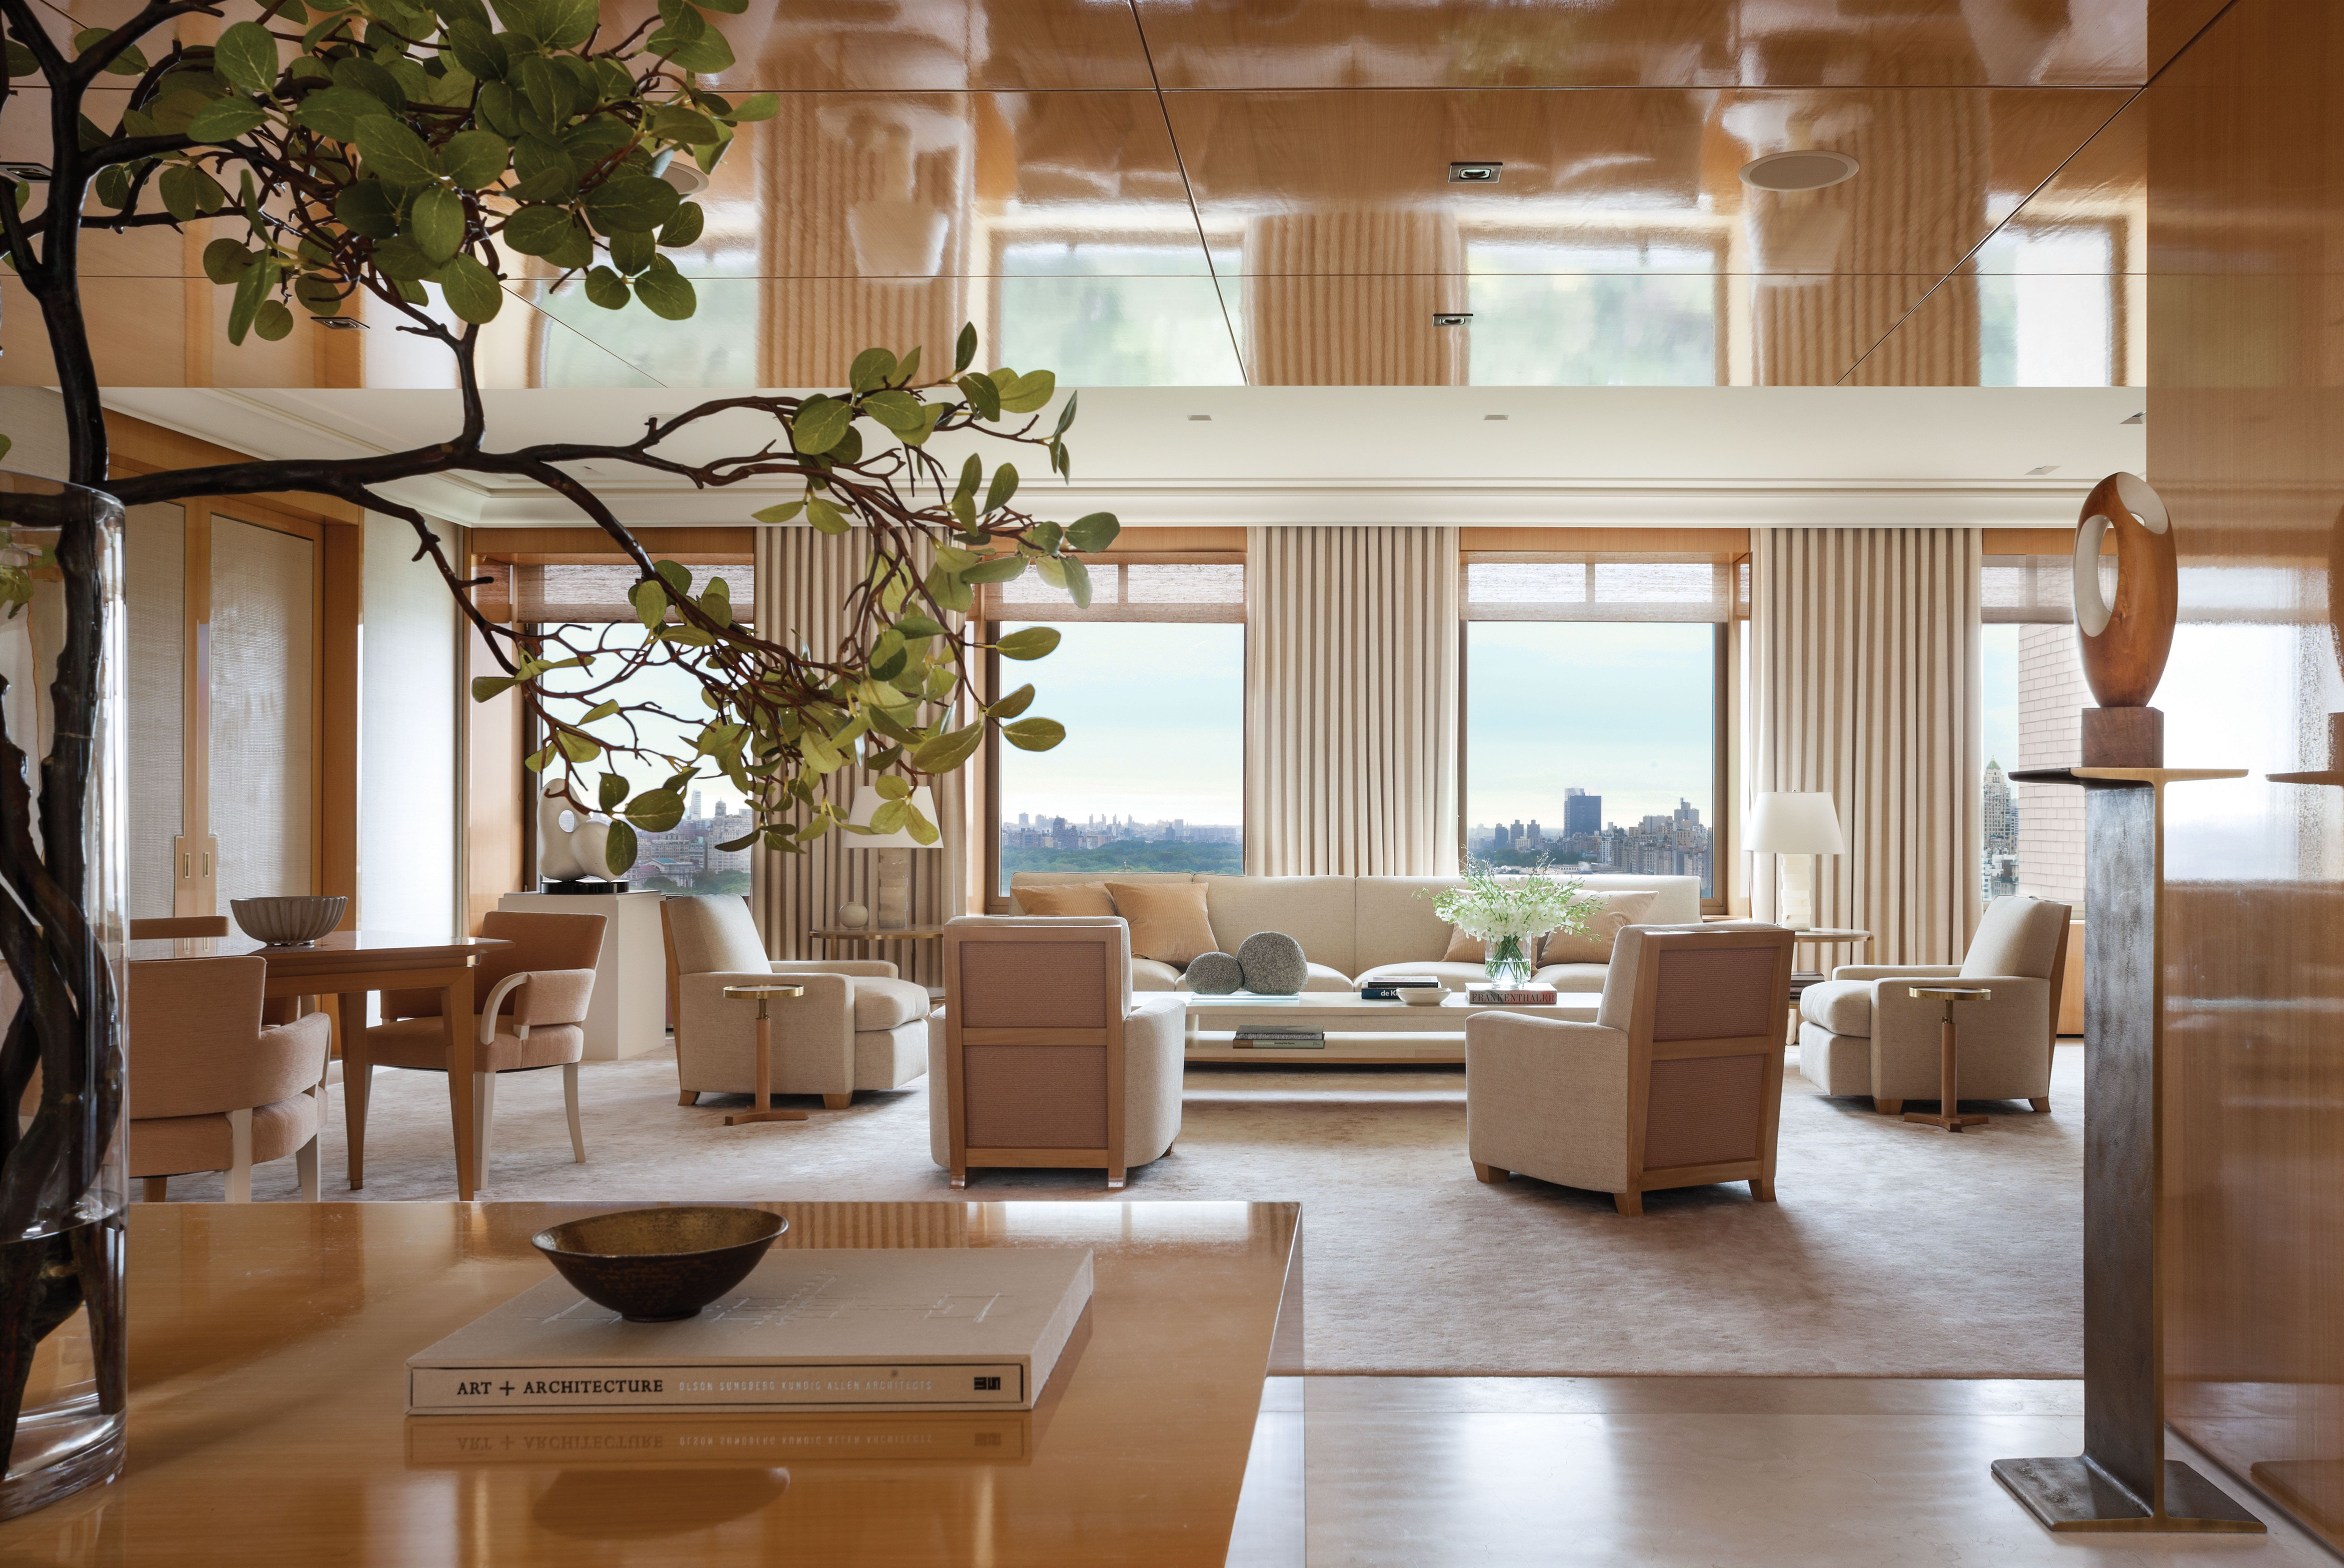 Browse Beautiful Images Of Thomas Pheasant Interiorsu0027s Central Park South  Project On Explore This Apartment In New York, NY And Other Breath Taking  Designs.